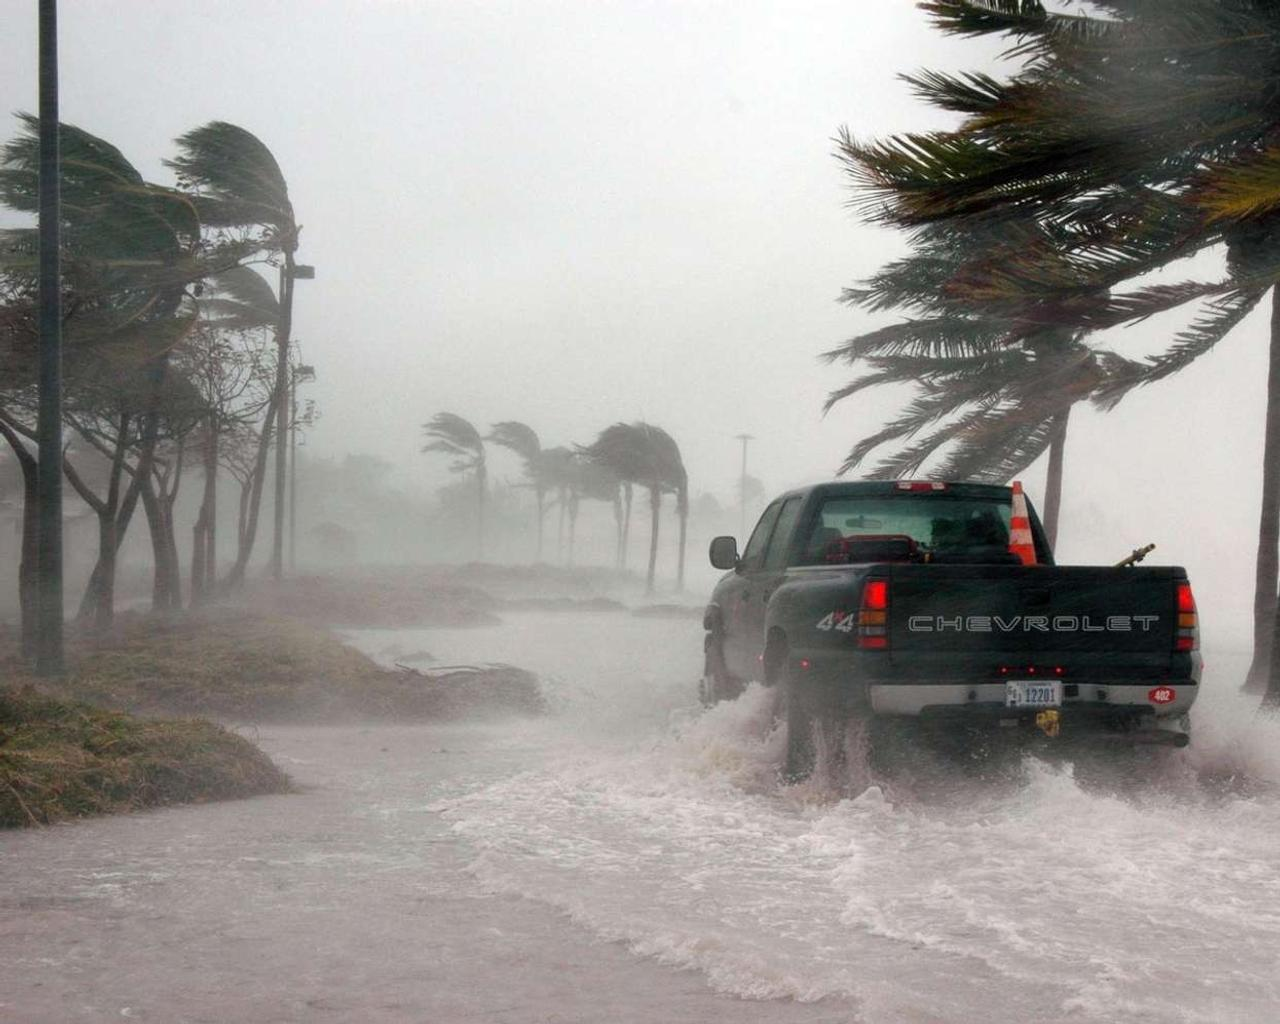 The National Oceanic and Atmospheric Administration (NOAA) has issued an alert that more tropical storms are on the way